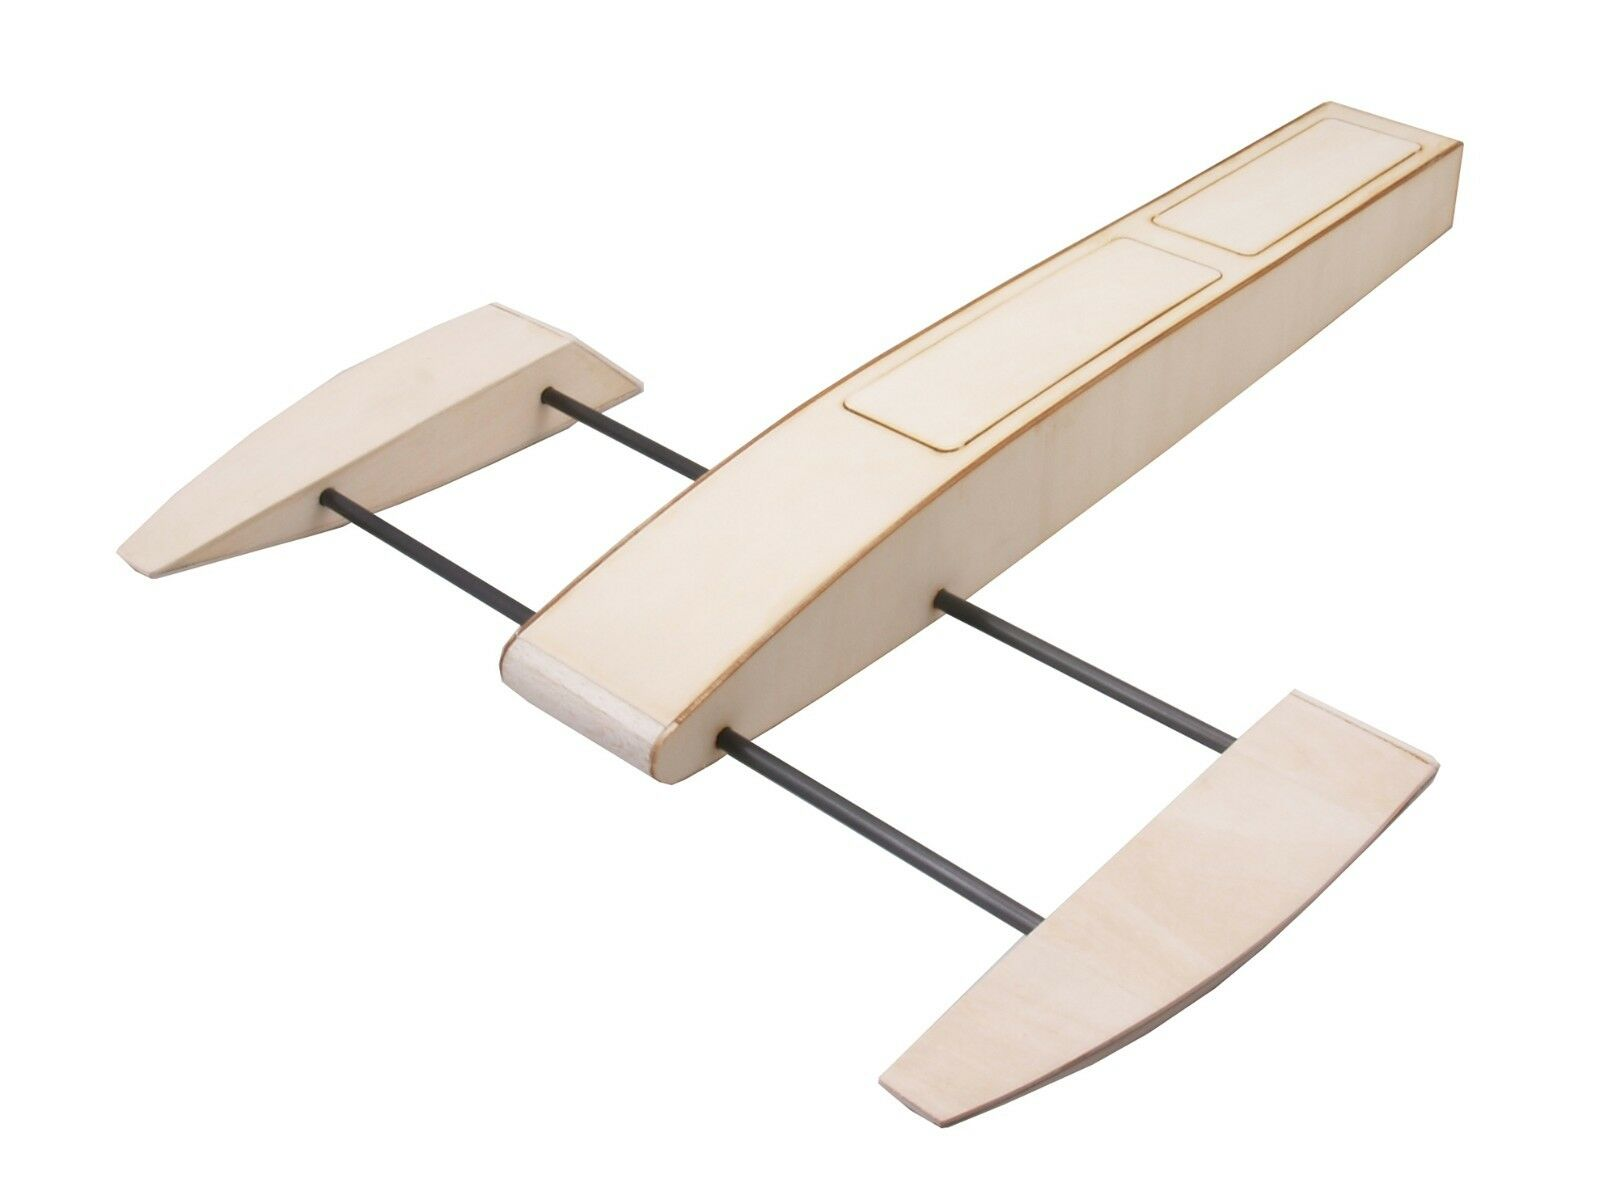 RC Plywood Outrigger Boat Wooden Sponson Race Boat 495mm w Shaft Metal Rudder